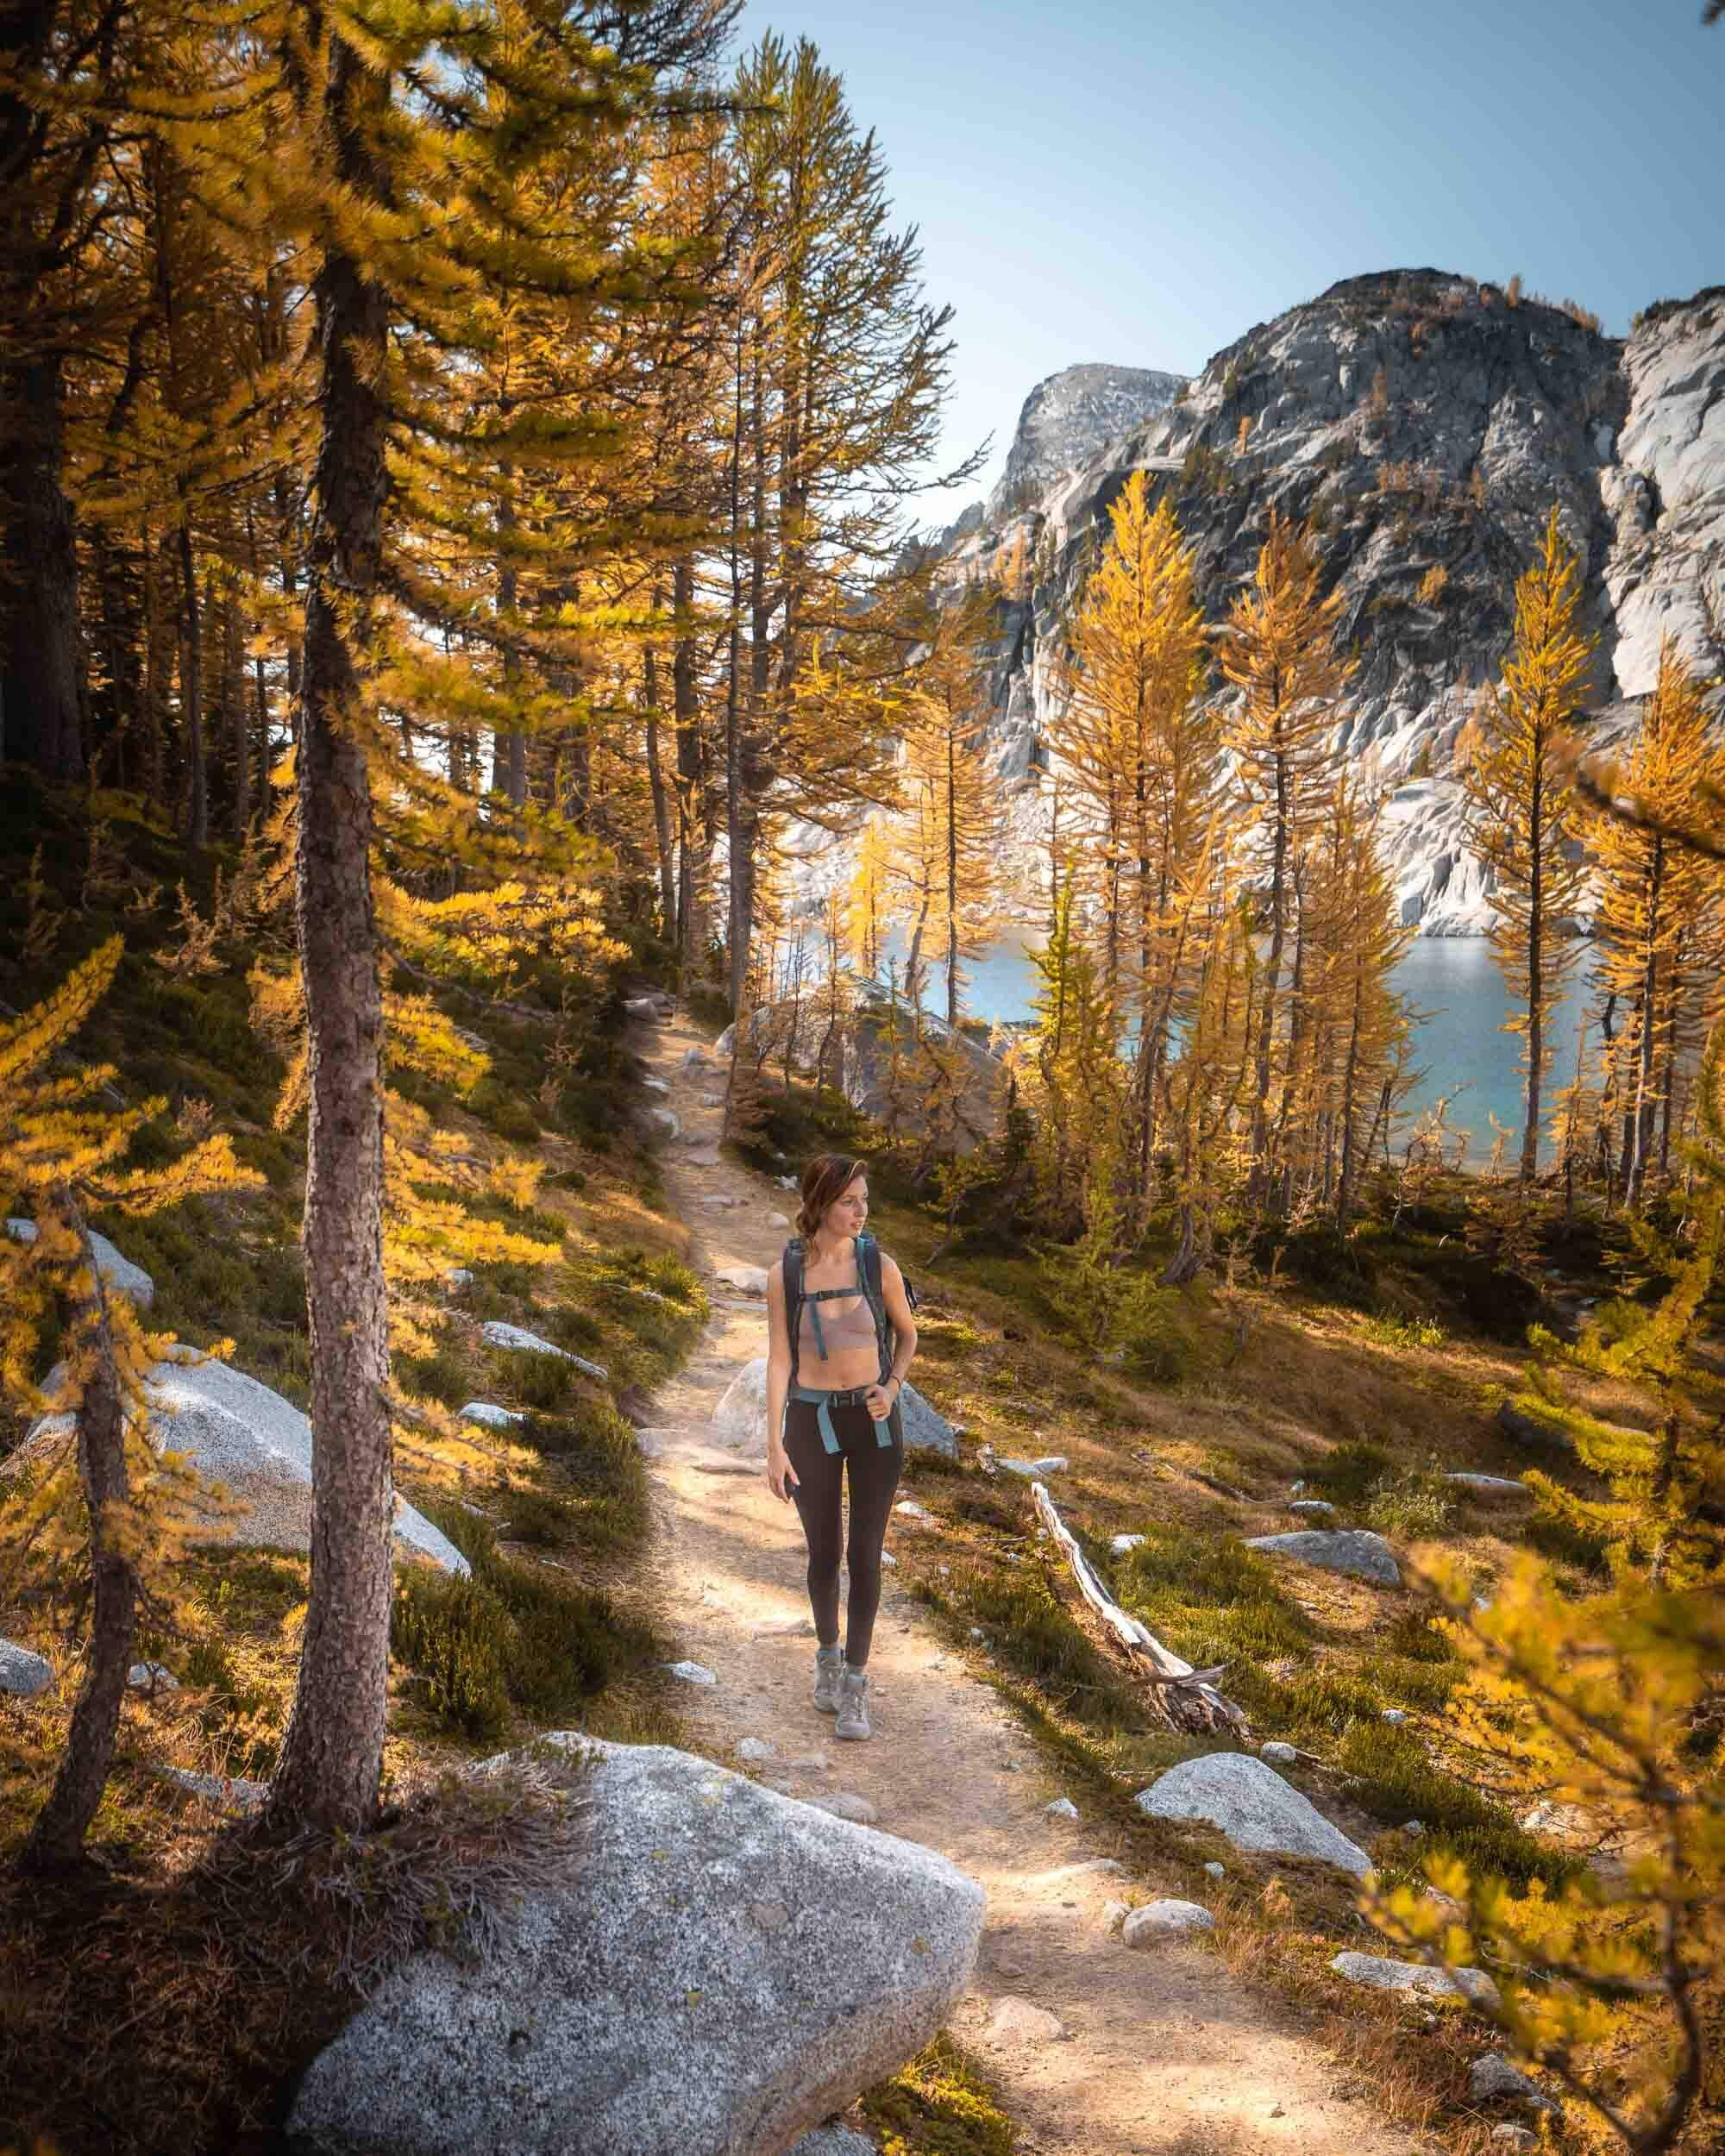 In Mid-October the trail through the Core Enchantment Zone is lined with golden Larches.